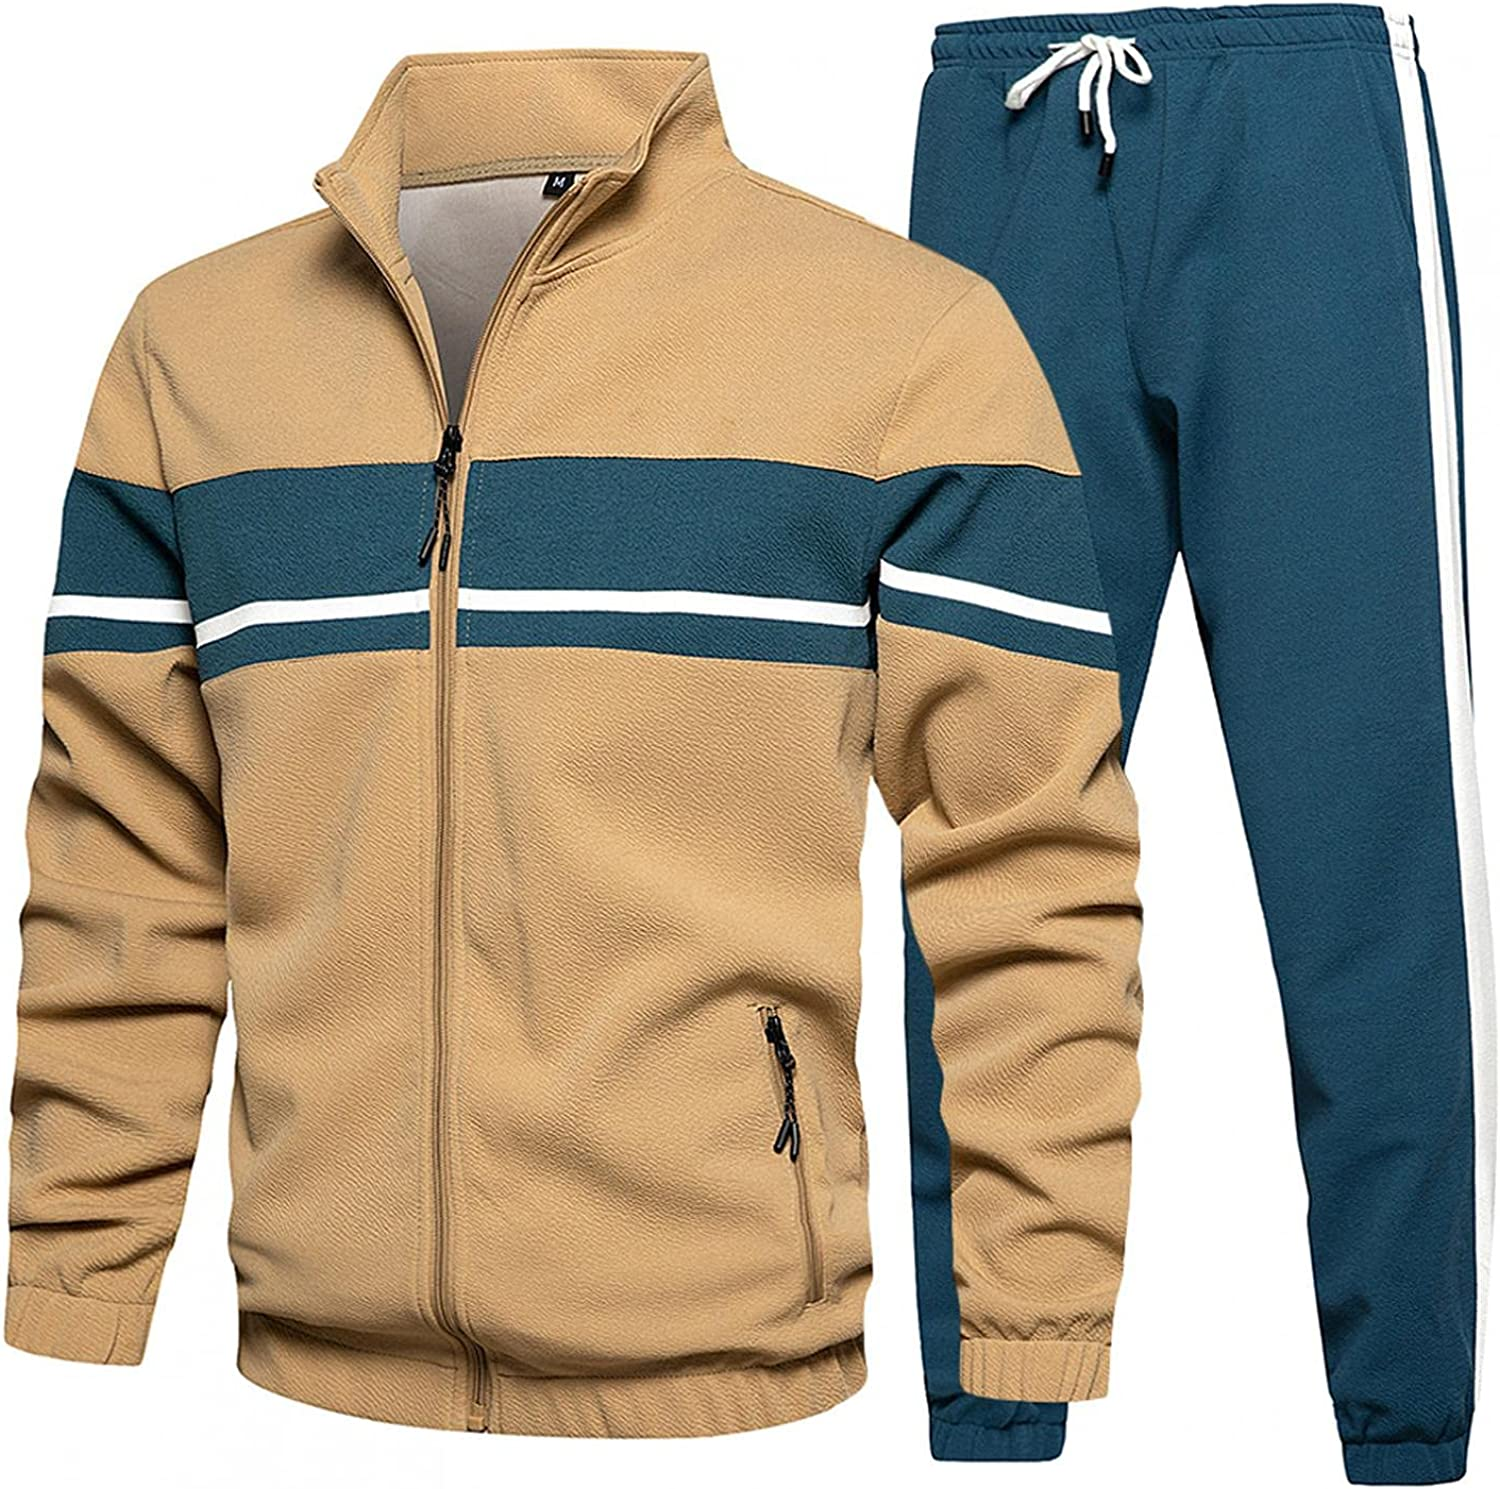 VEKDONE Men's Casual Tracksuit Set 2 Piece Outfit Athletic Sports Full Zip Striped Patchwork Running Jogging Sweat Suits